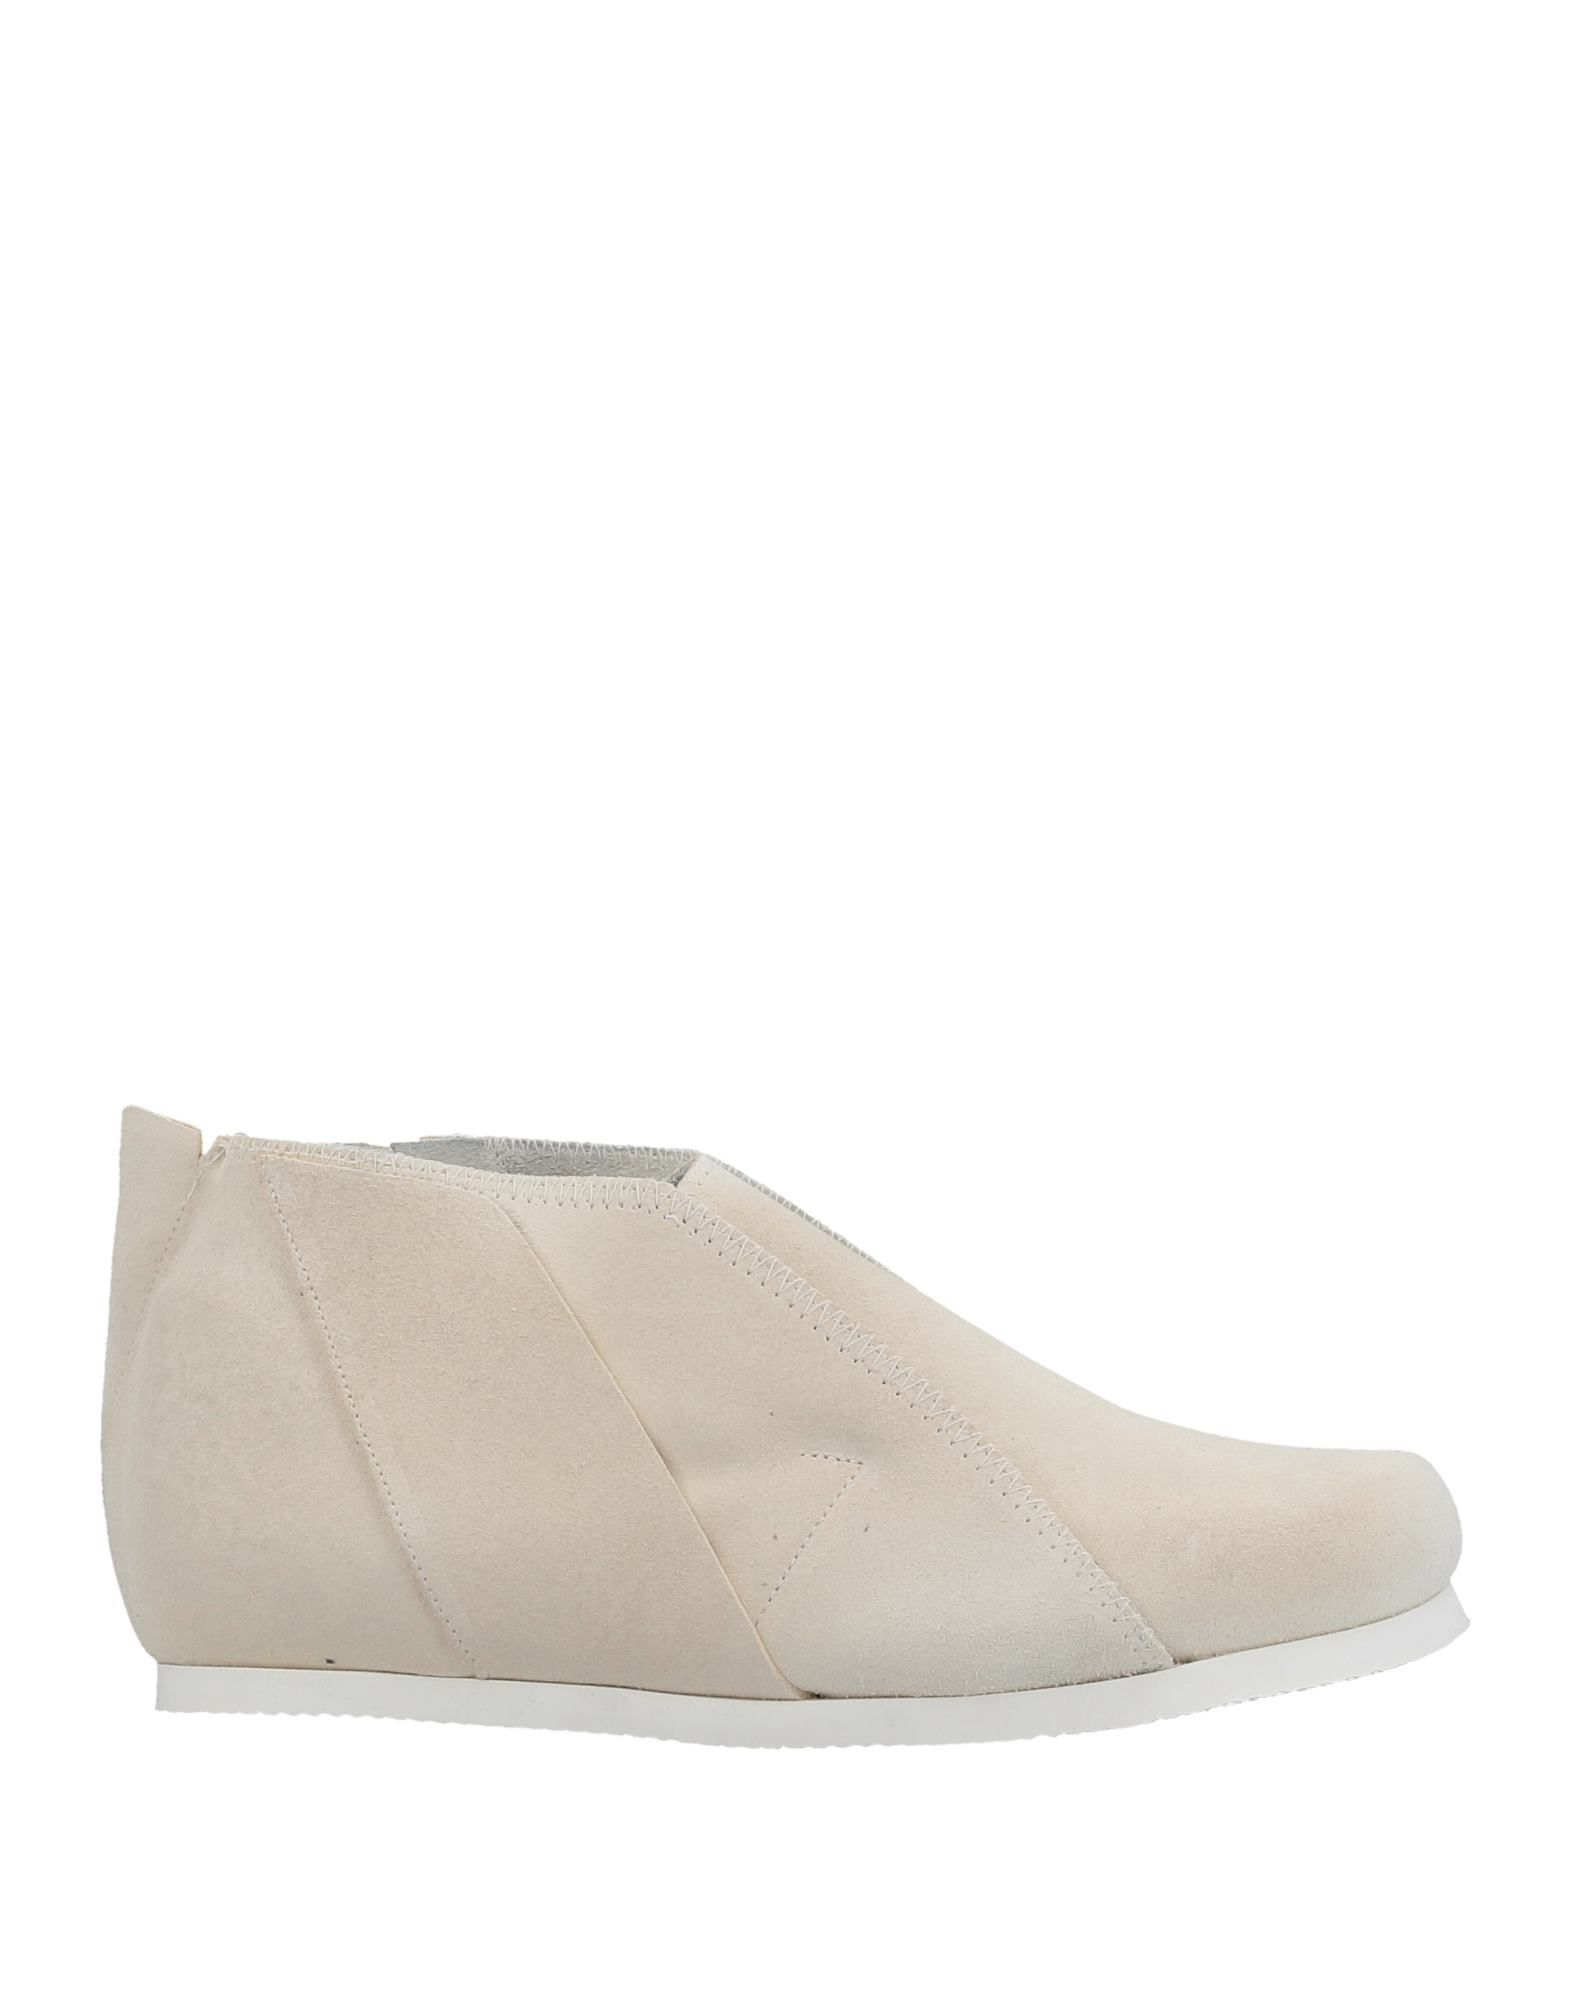 PETER NON | PETER NON Ankle boots 11508746 | Goxip